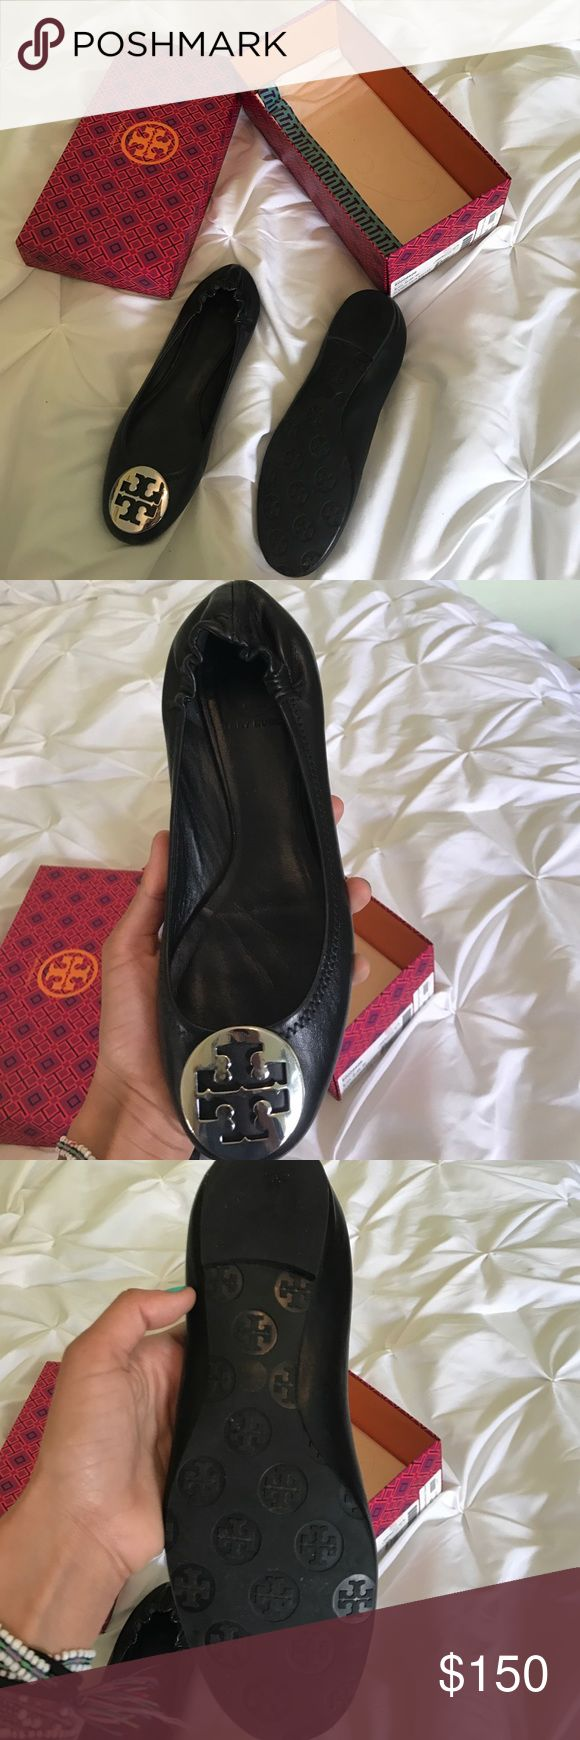 Tory Butch Flats Never worn and I love this shoe! Tory Burch Shoes Flats & Loafers